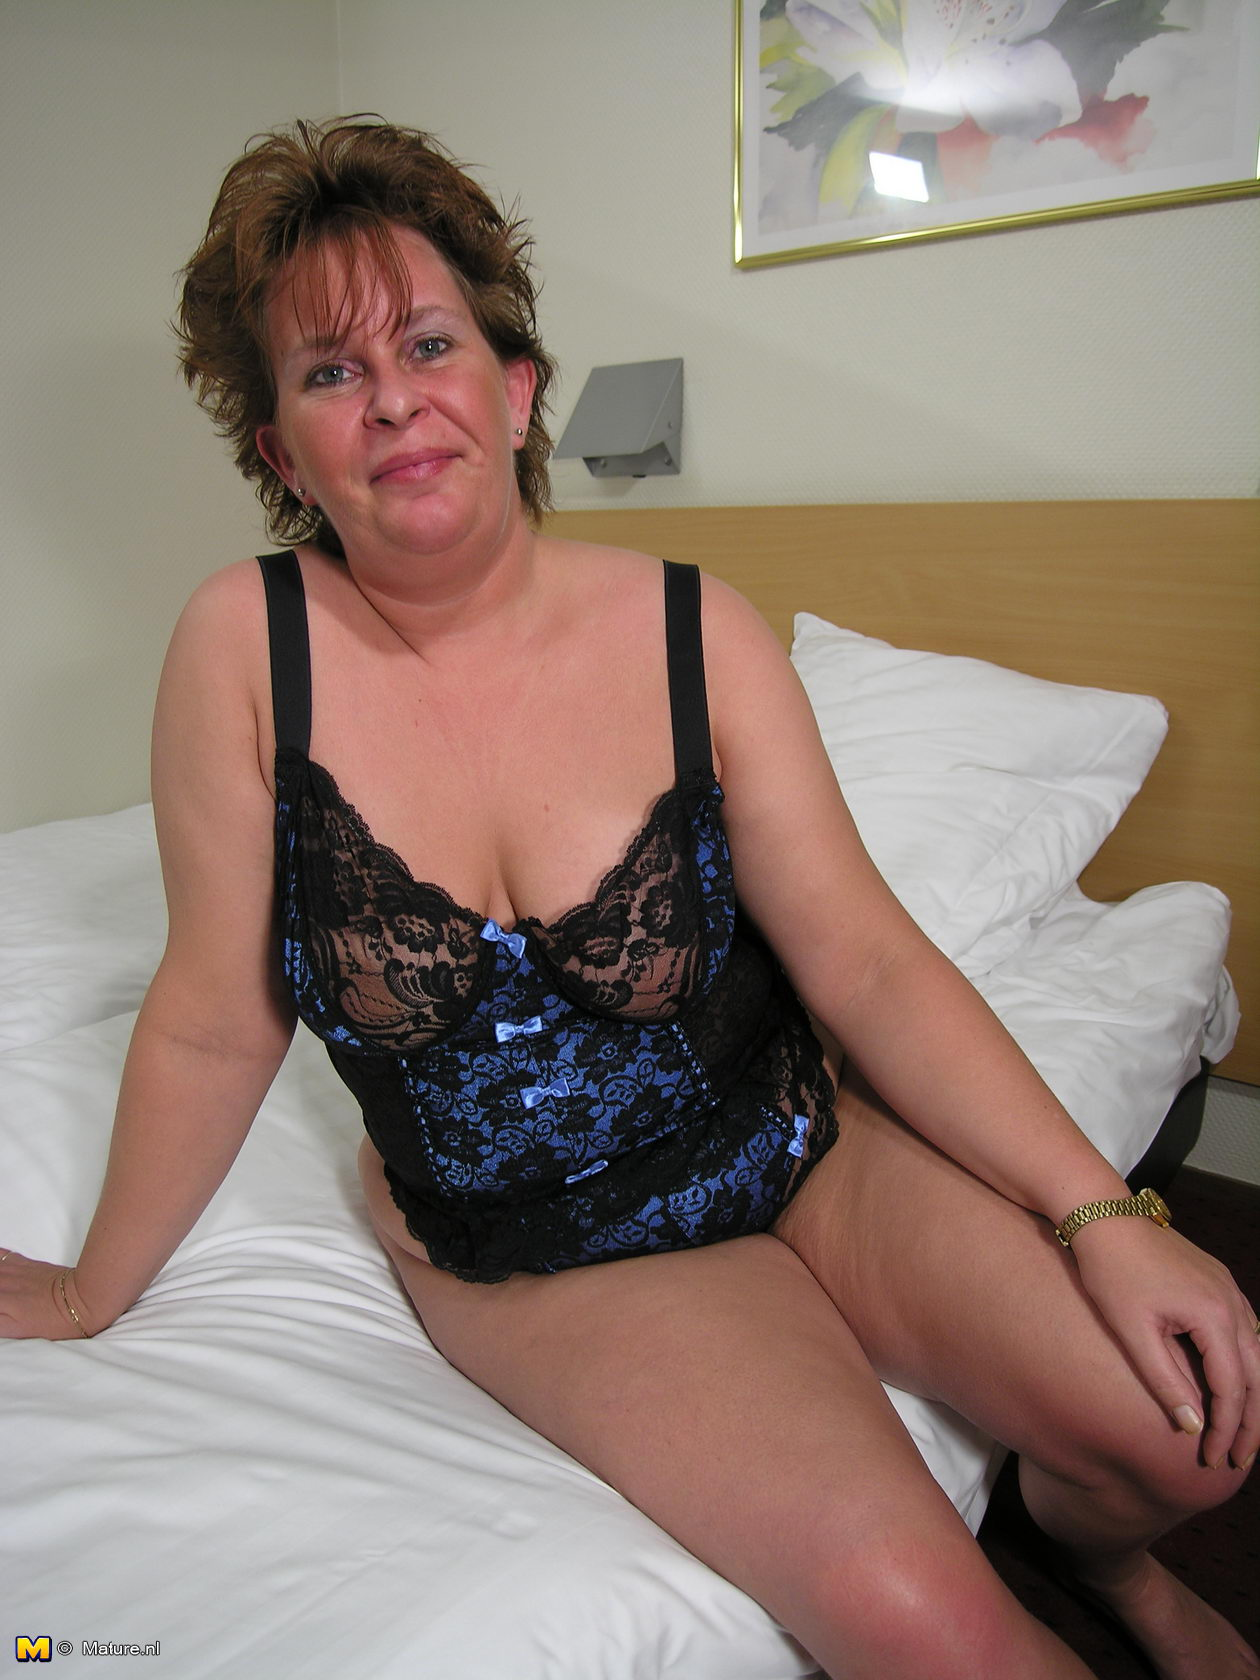 Abusa Madre Porno mature.nl chubby mama playing with her wet pussy 141623